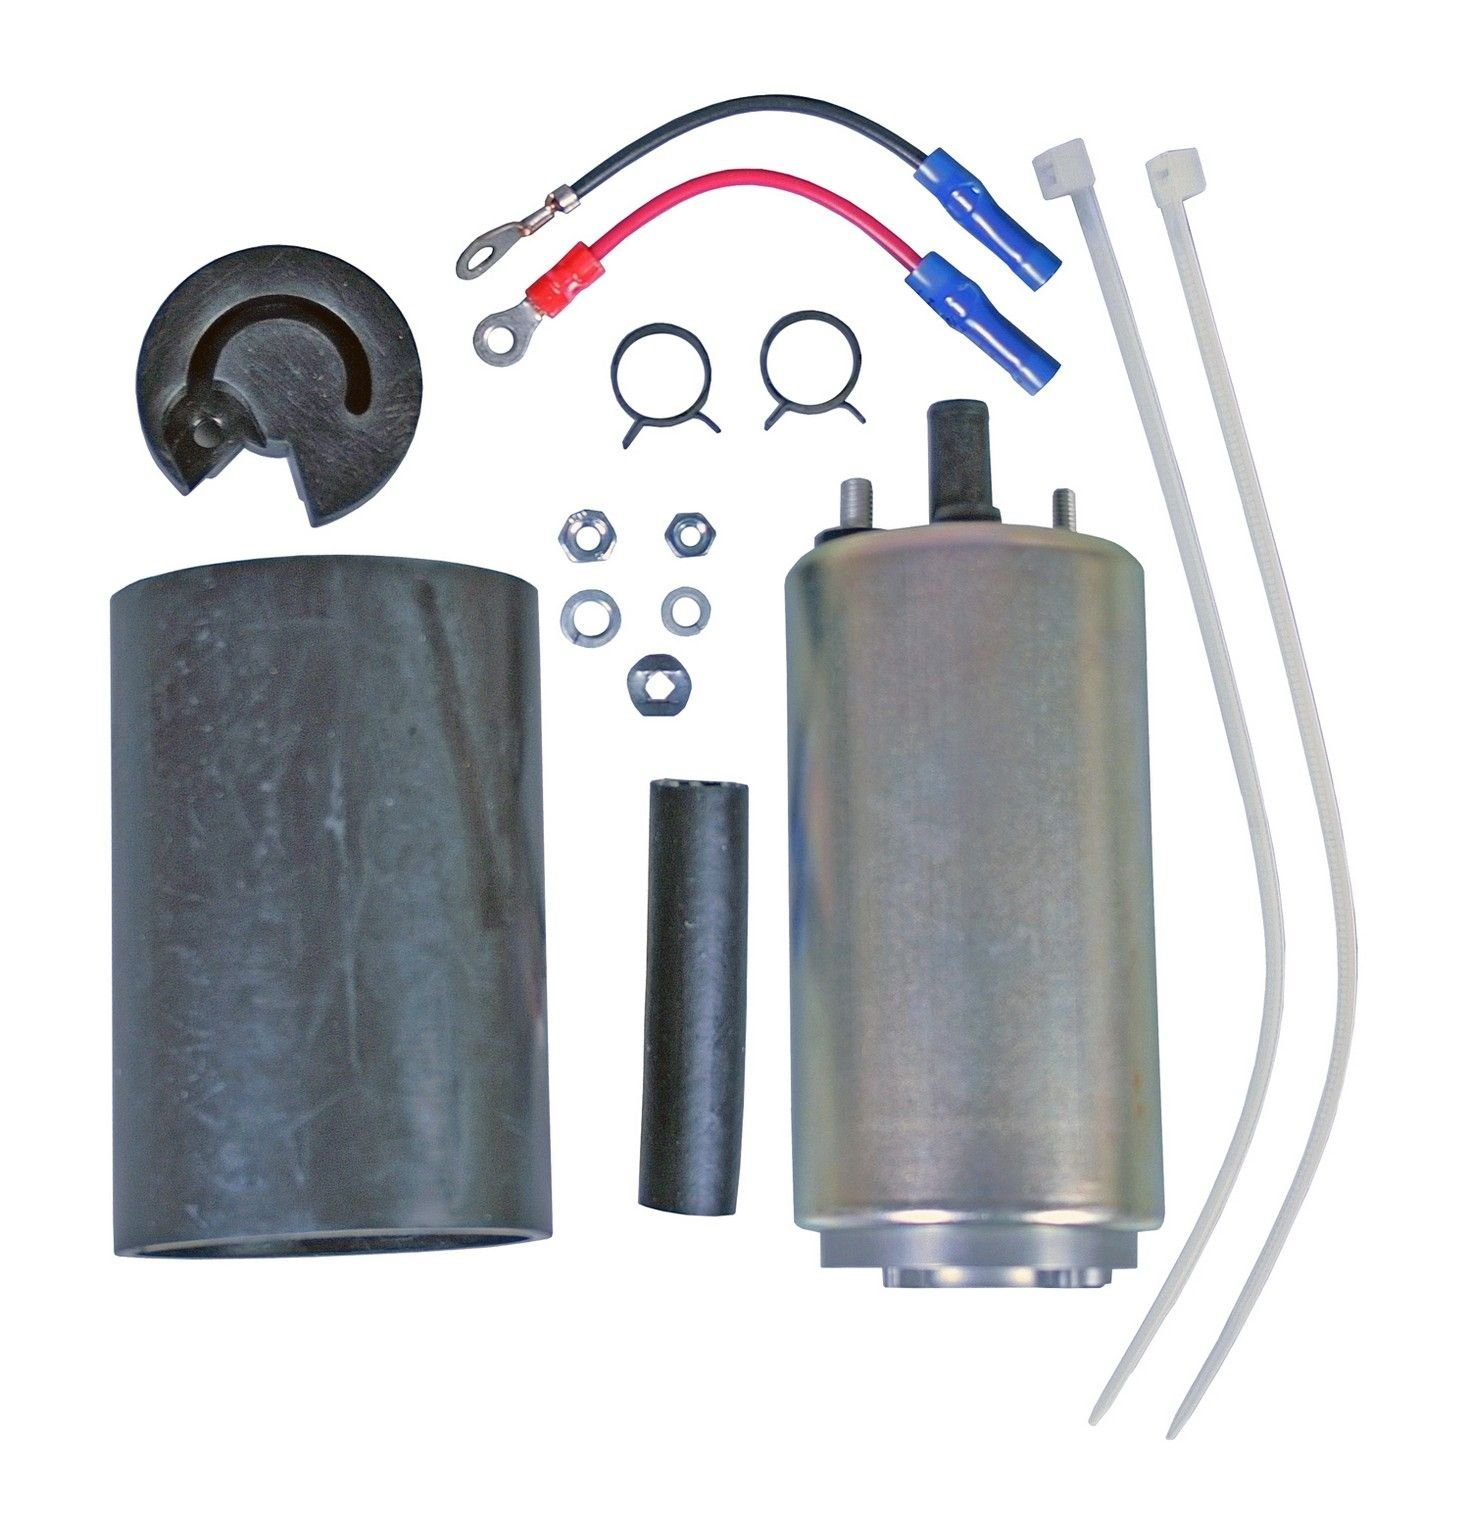 Subaru Legacy Electric Fuel Pump Replacement Airtex Autobest Beck 1997 Filter N A 4 Cyl 22l E8235 W Engine Codes Ej22e And Ej22ez Strainer Required To Validate The Warranty